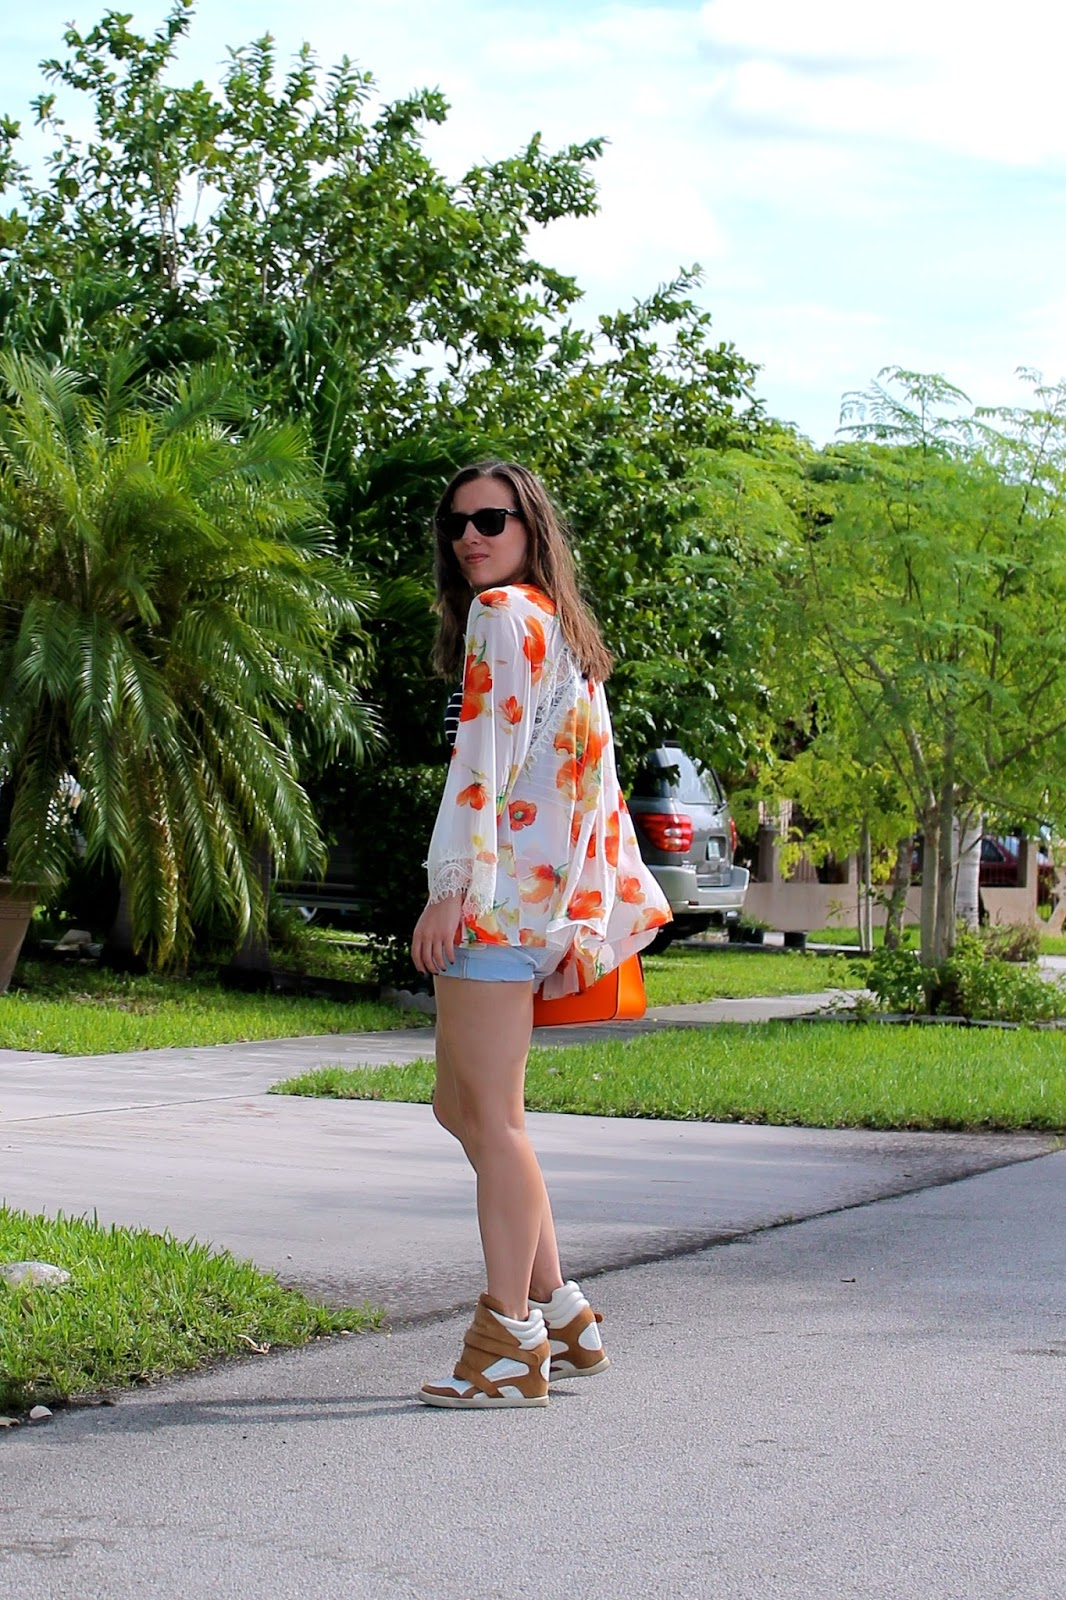 outfit ideas, fashion blog, style blog, fblogger, Miami fashion blogger, miami style, what I wore, look book, ootd, style blogger, fashion blogger